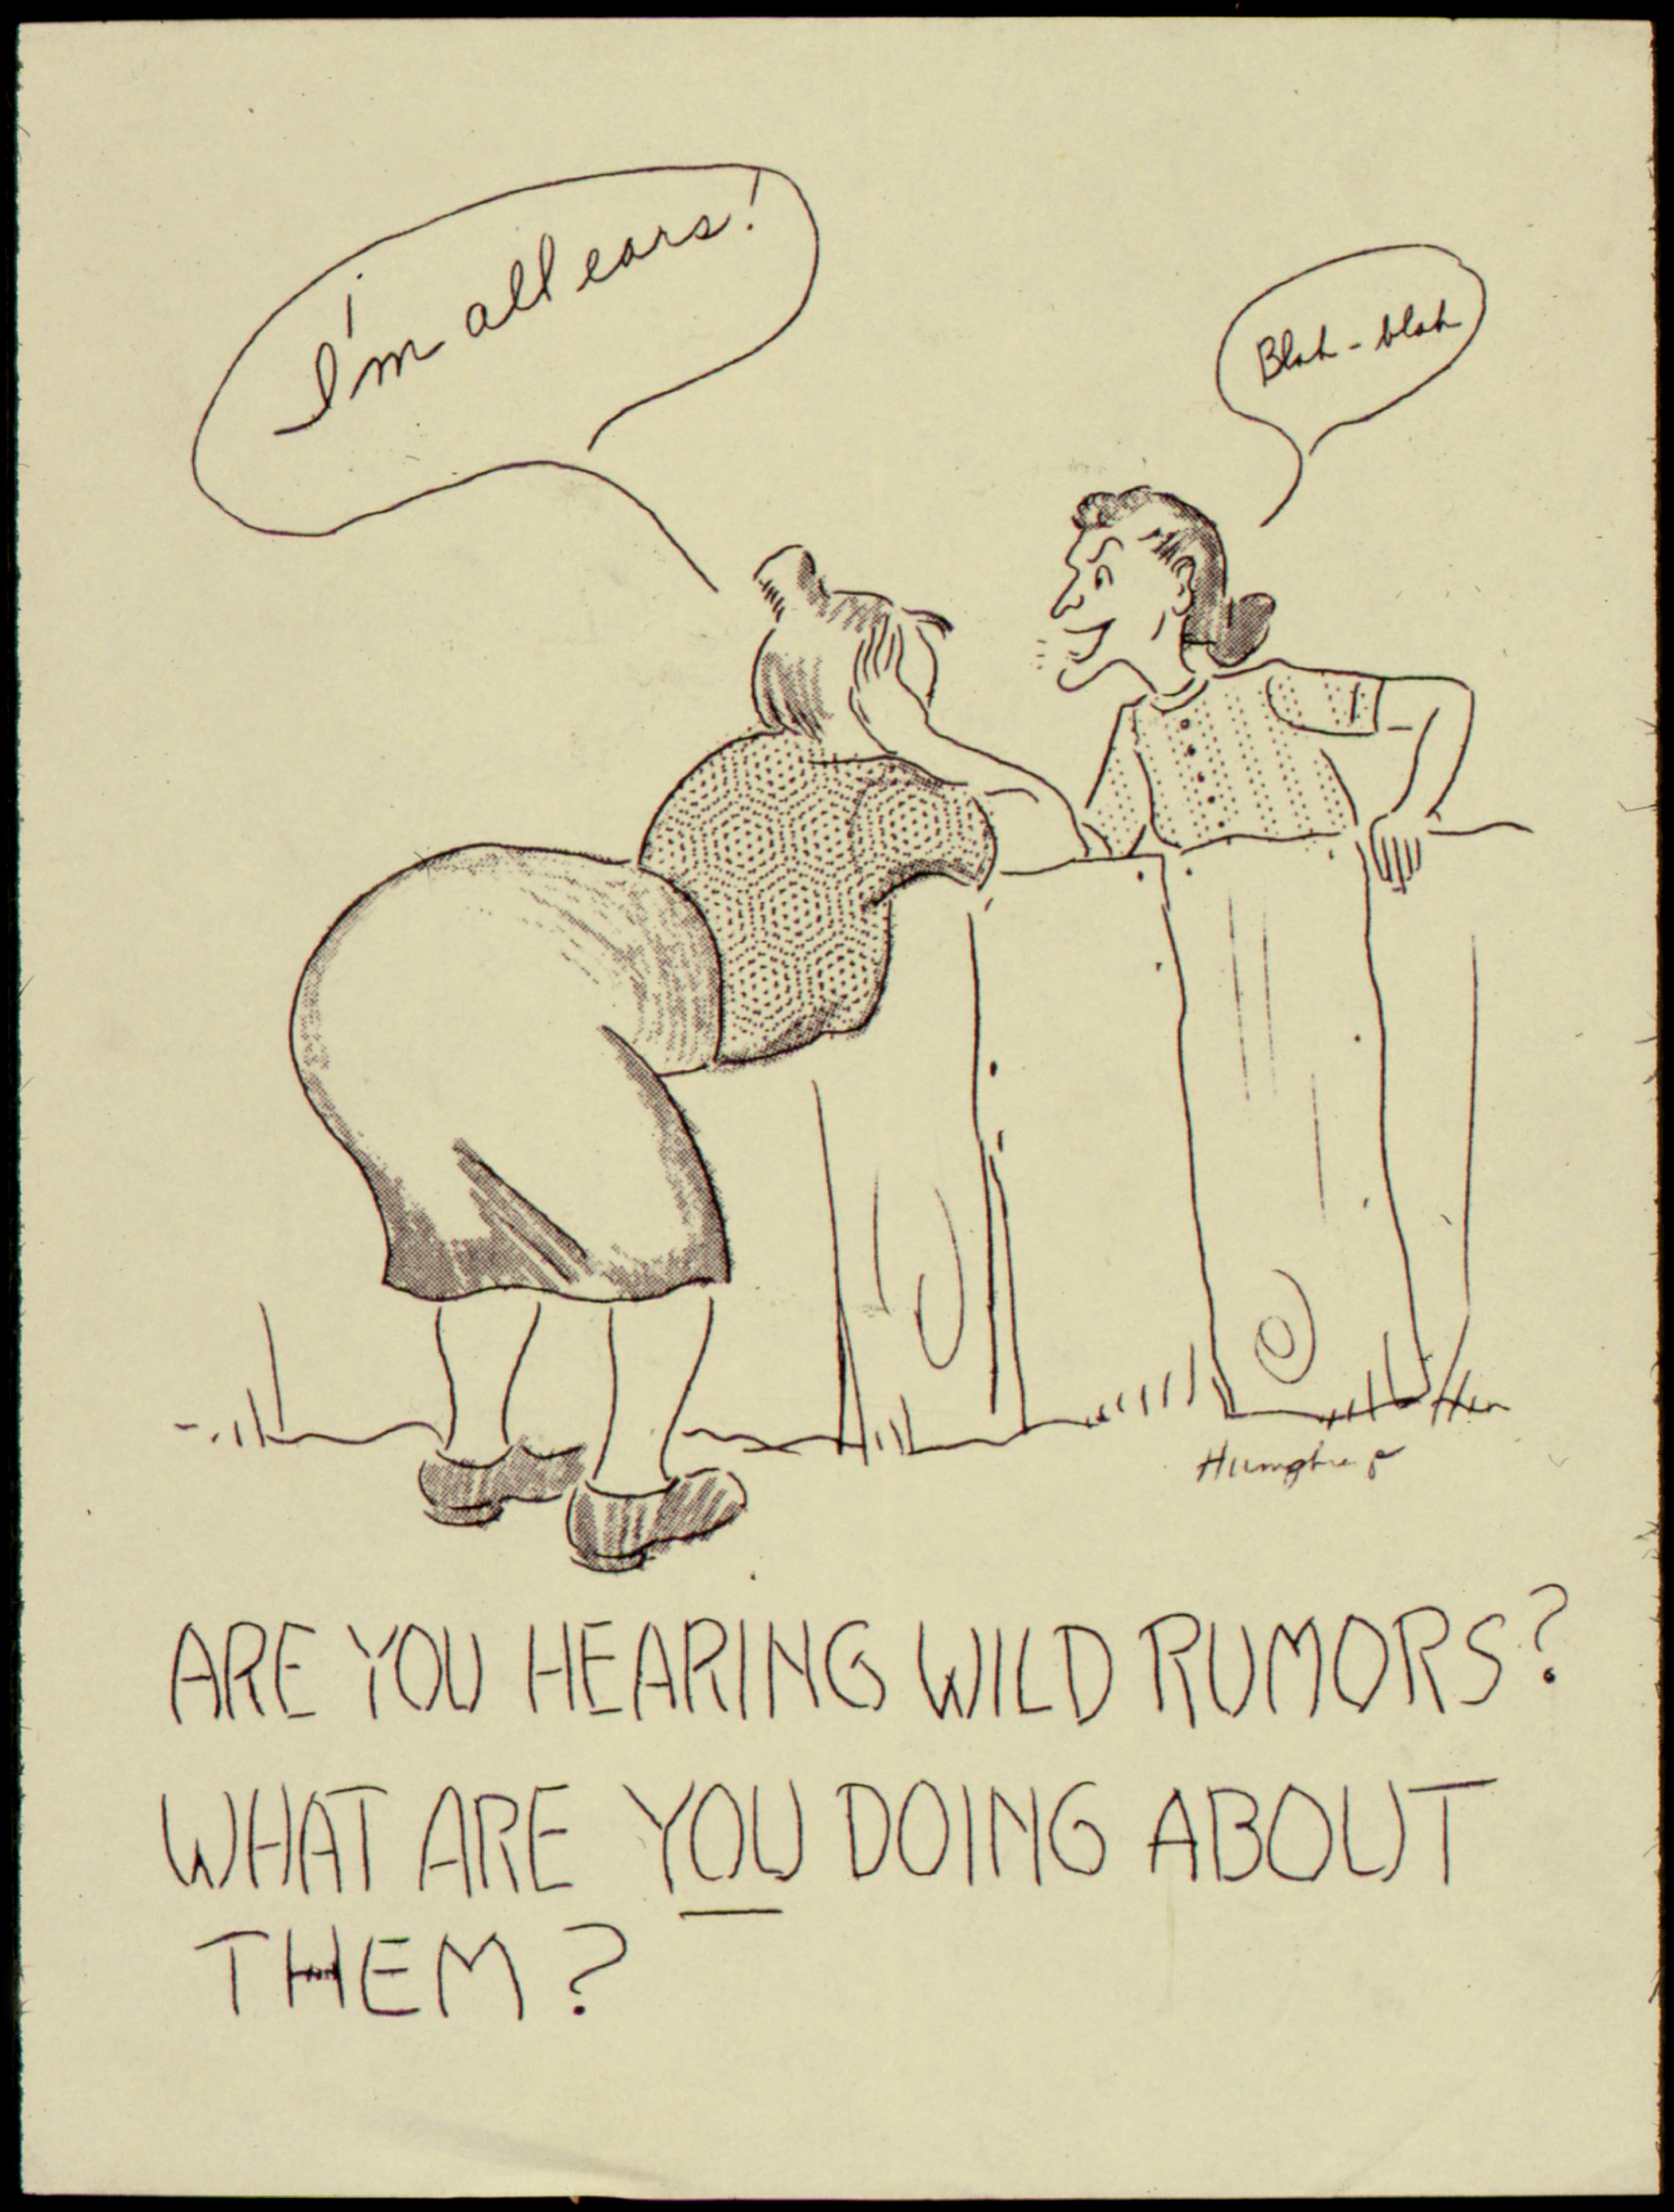 Uknown author creates Illustration of the spreading of rumors via Wikimedia Commons